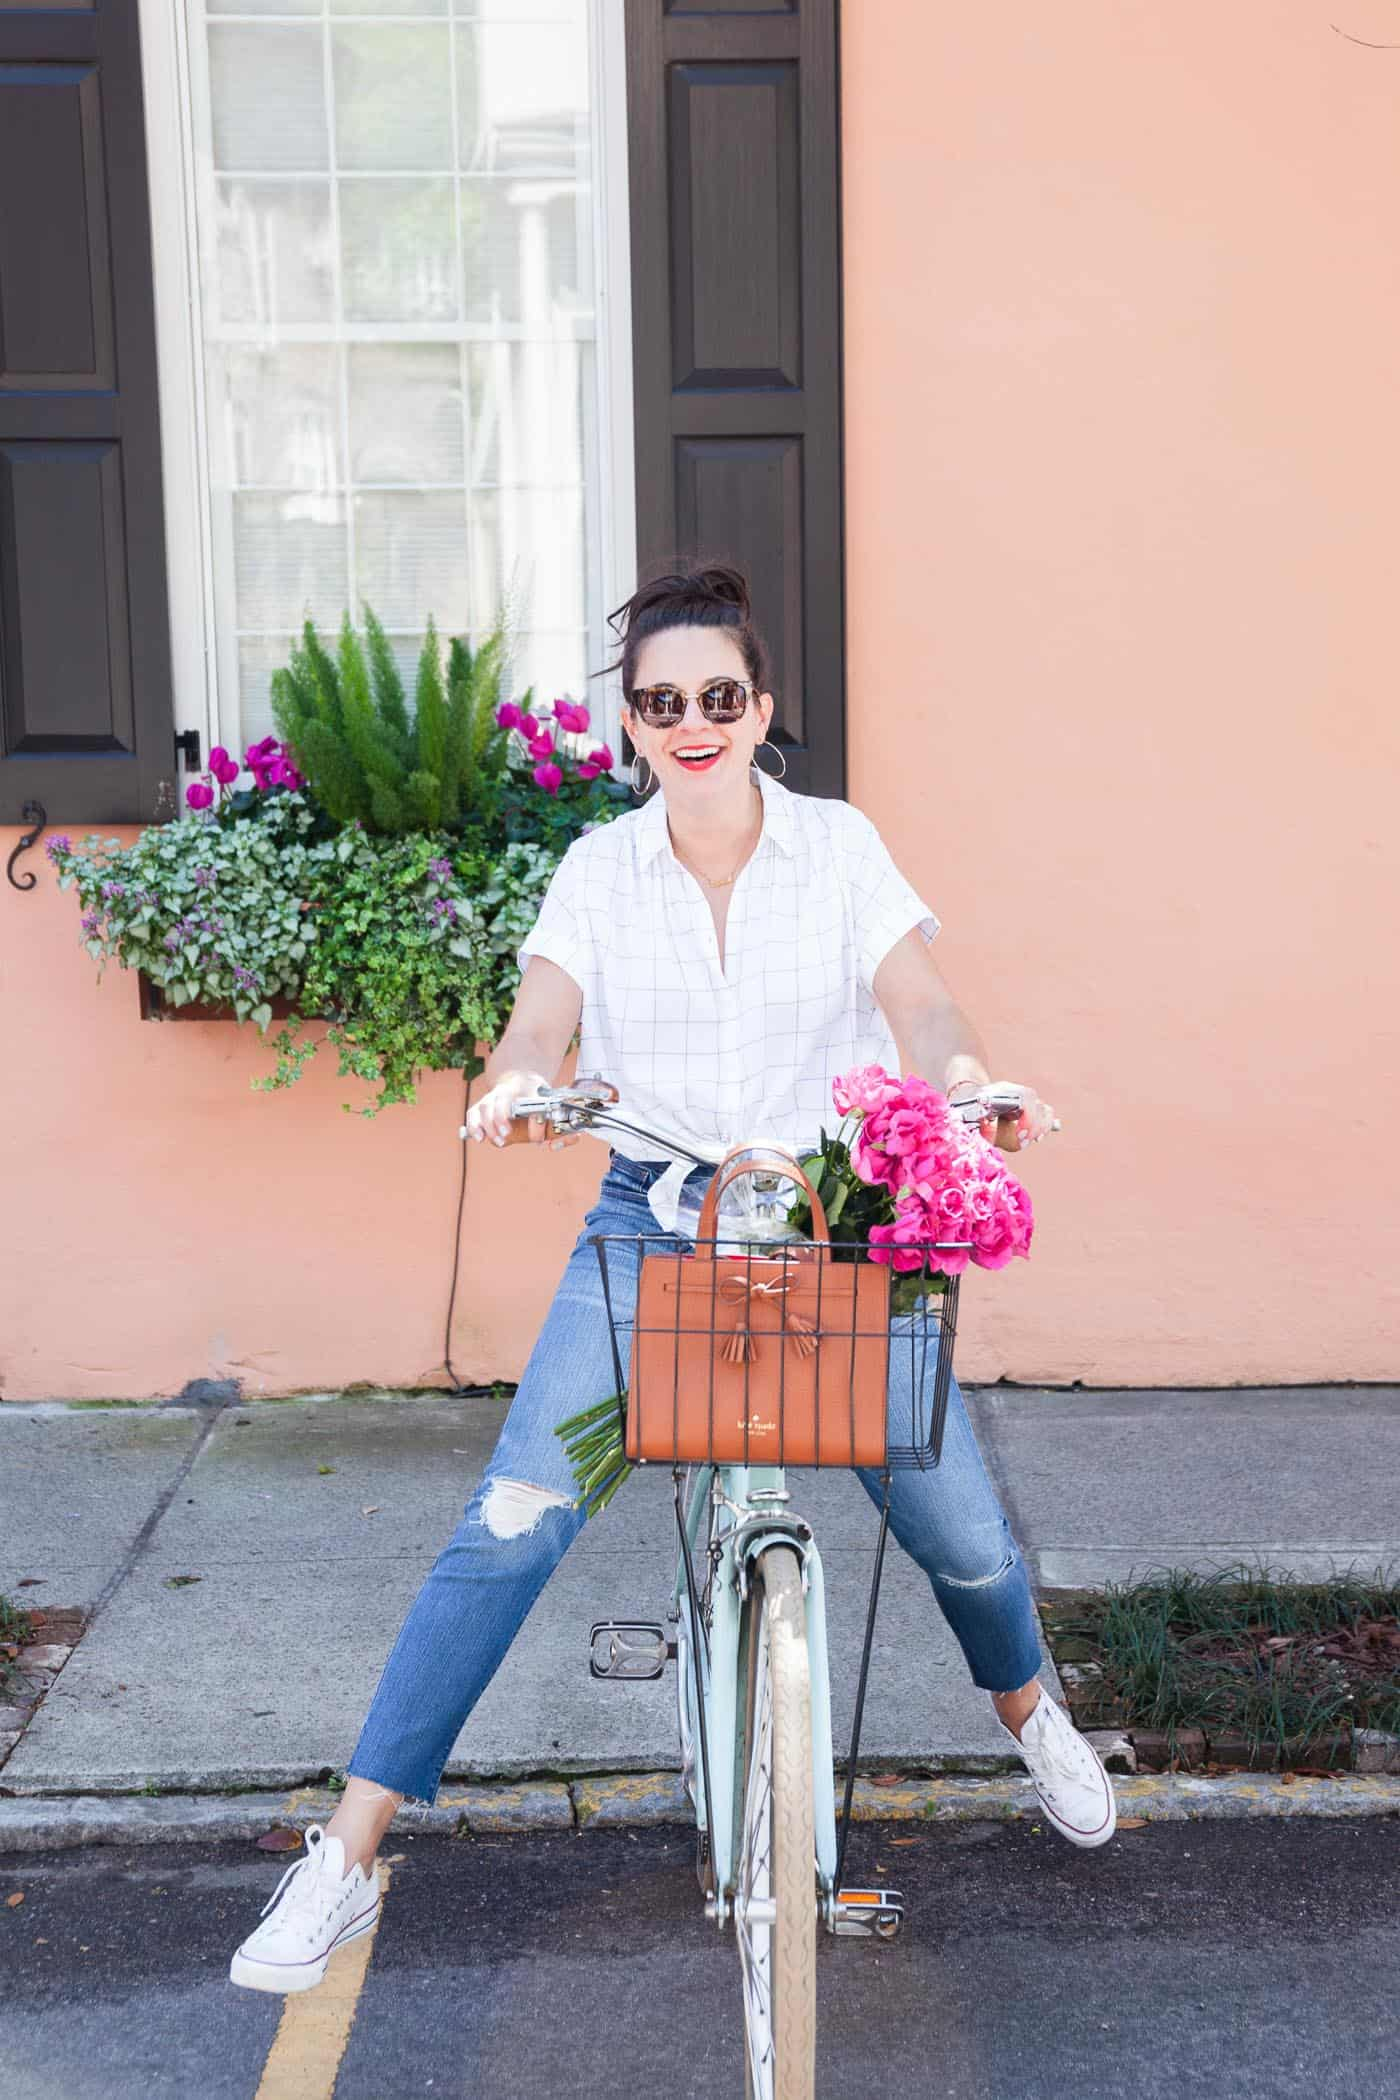 How to dress the right way for a day on a bike, bicycle with flowers in the basket - My Style Vita @mystylevita